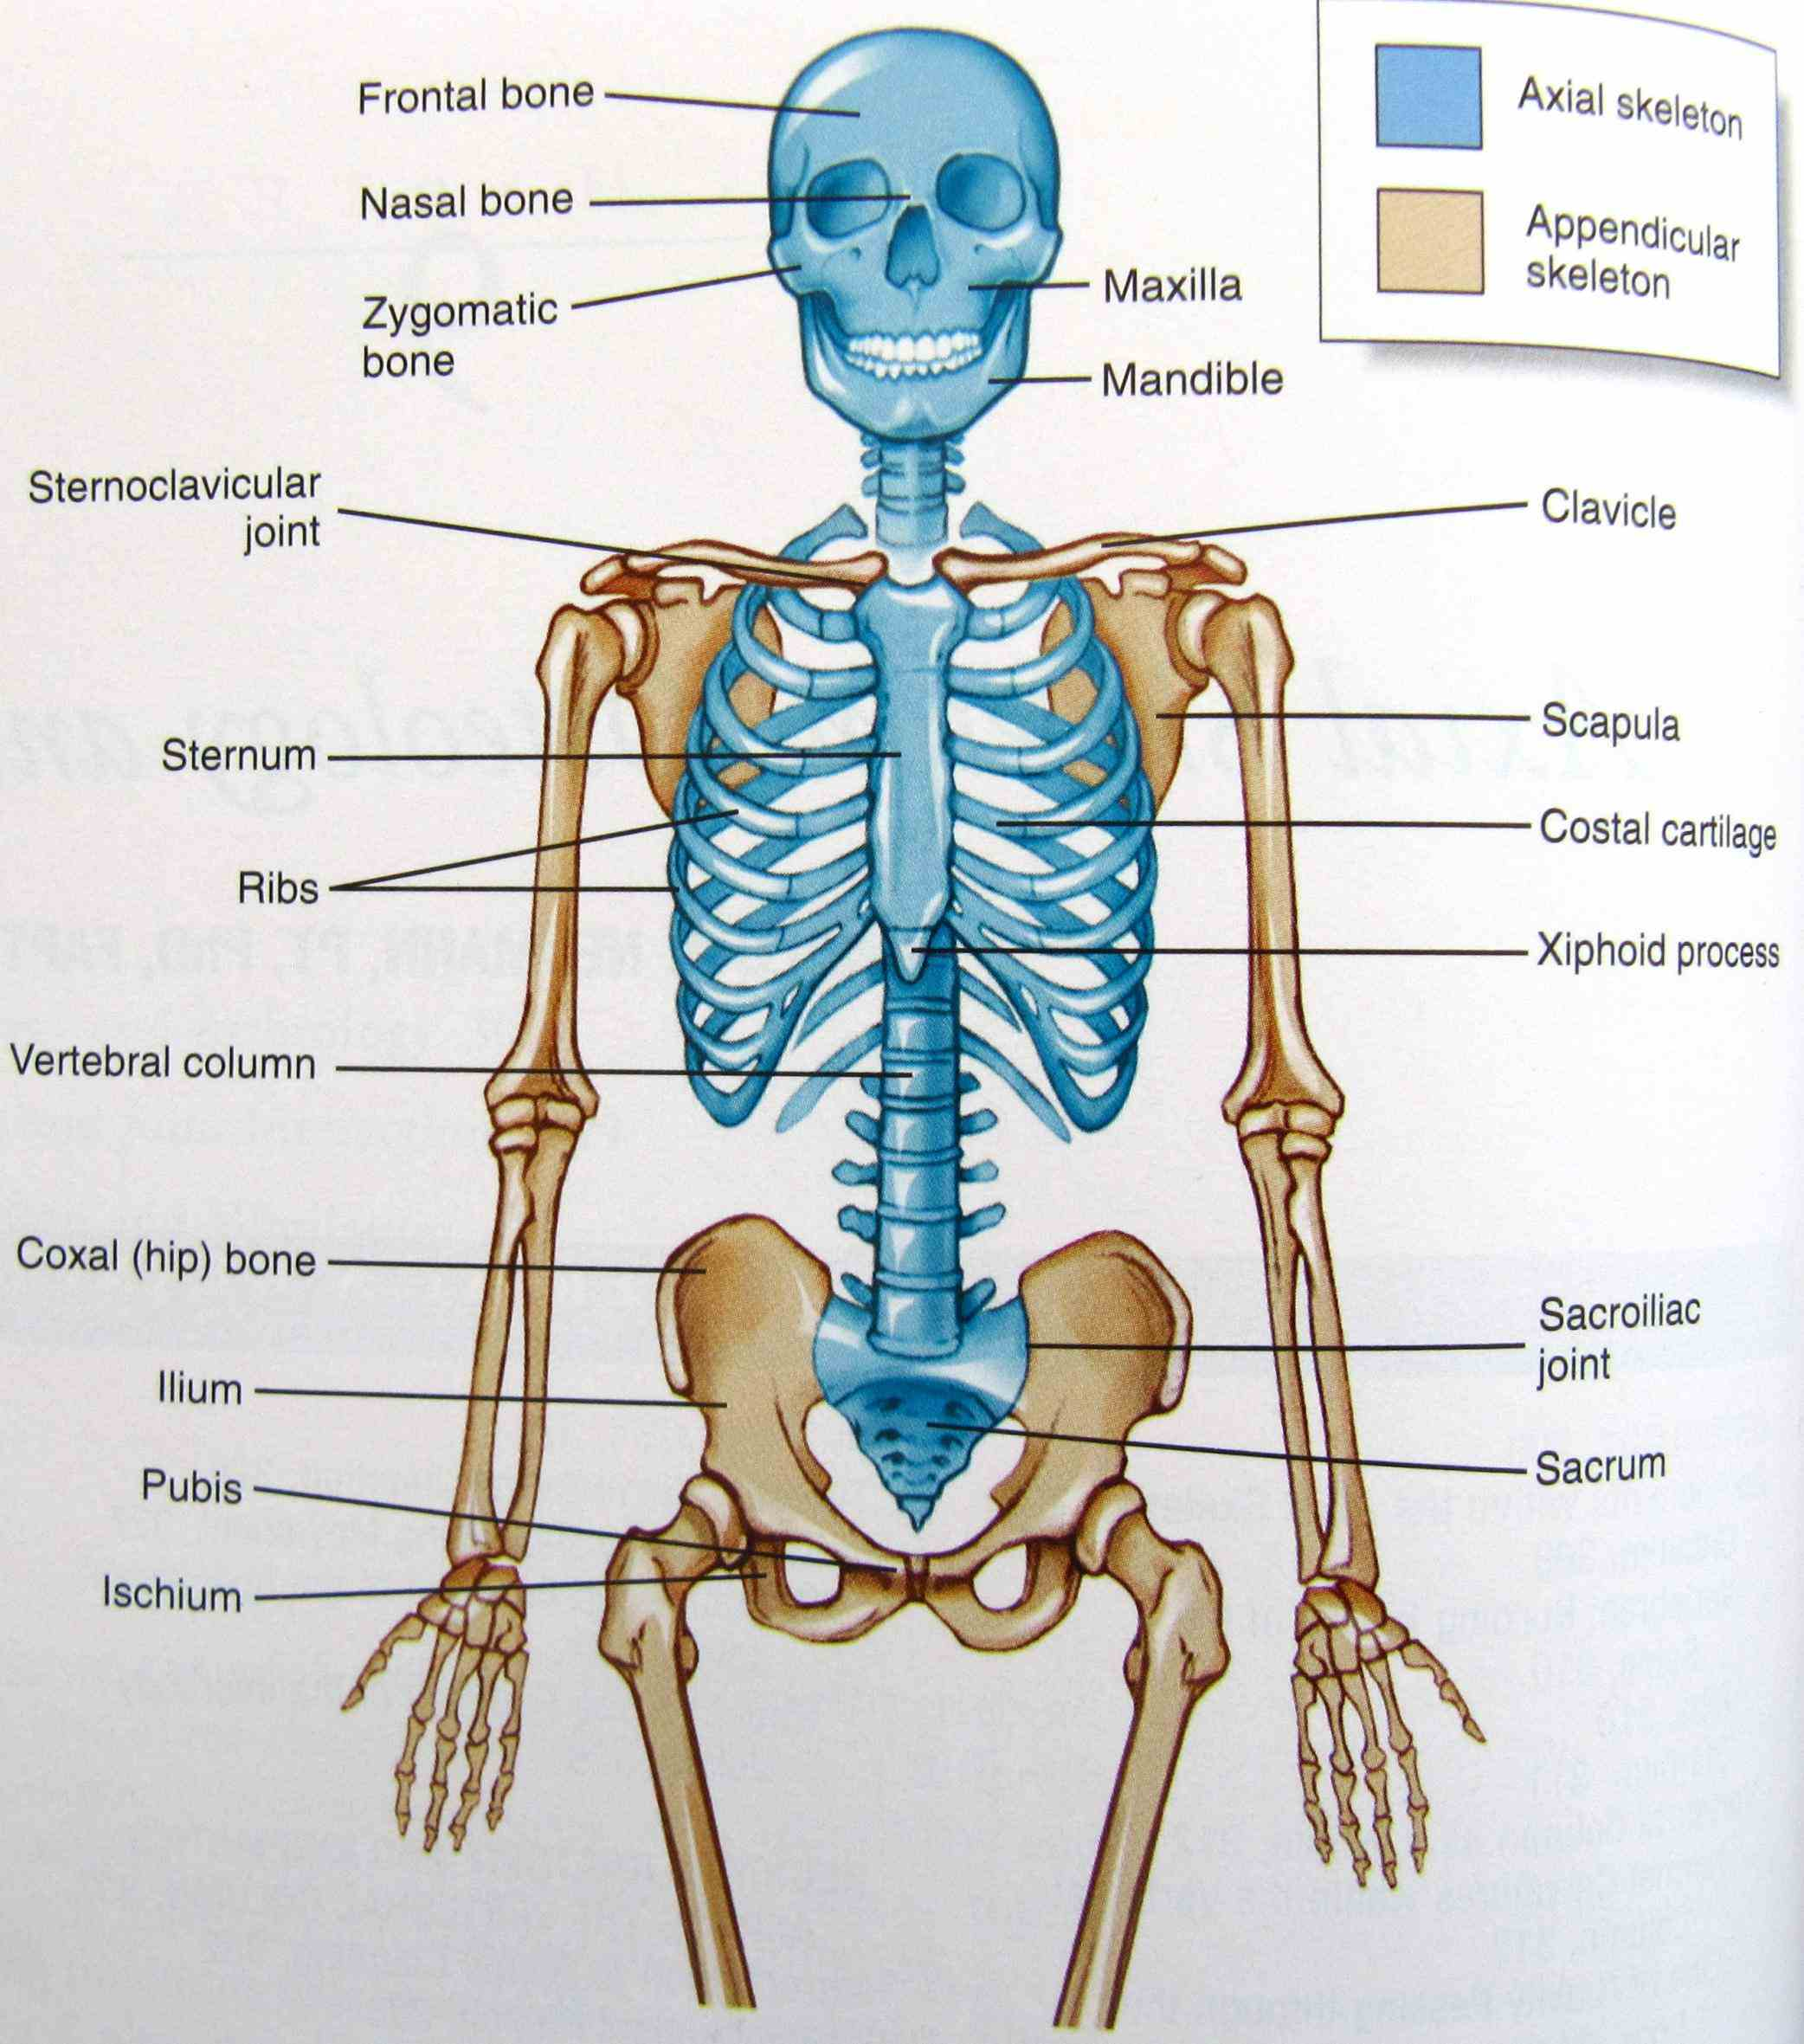 Anatomy of skeleton